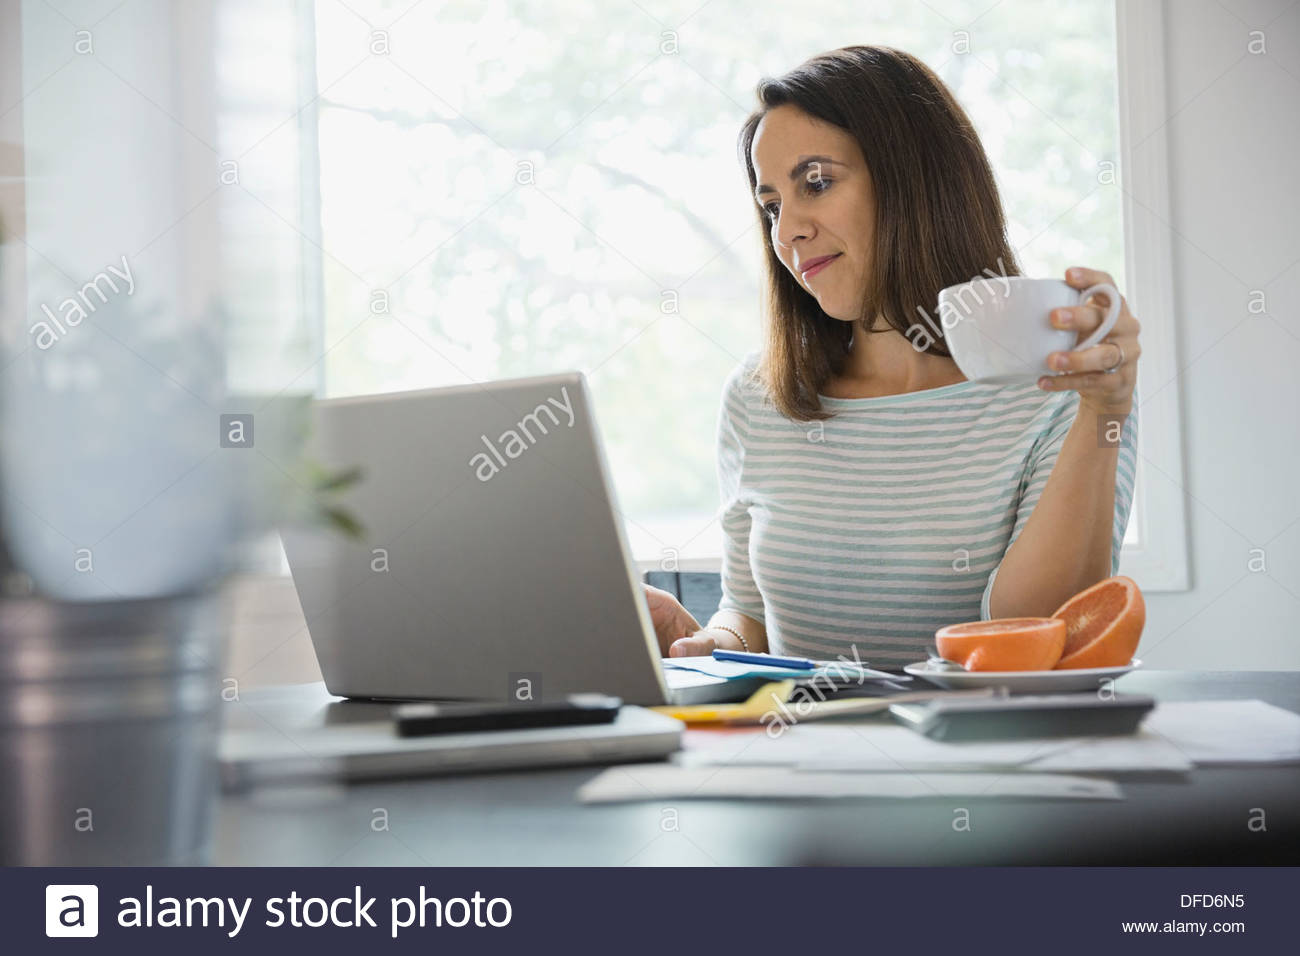 Woman working on laptop at home office - Stock Image